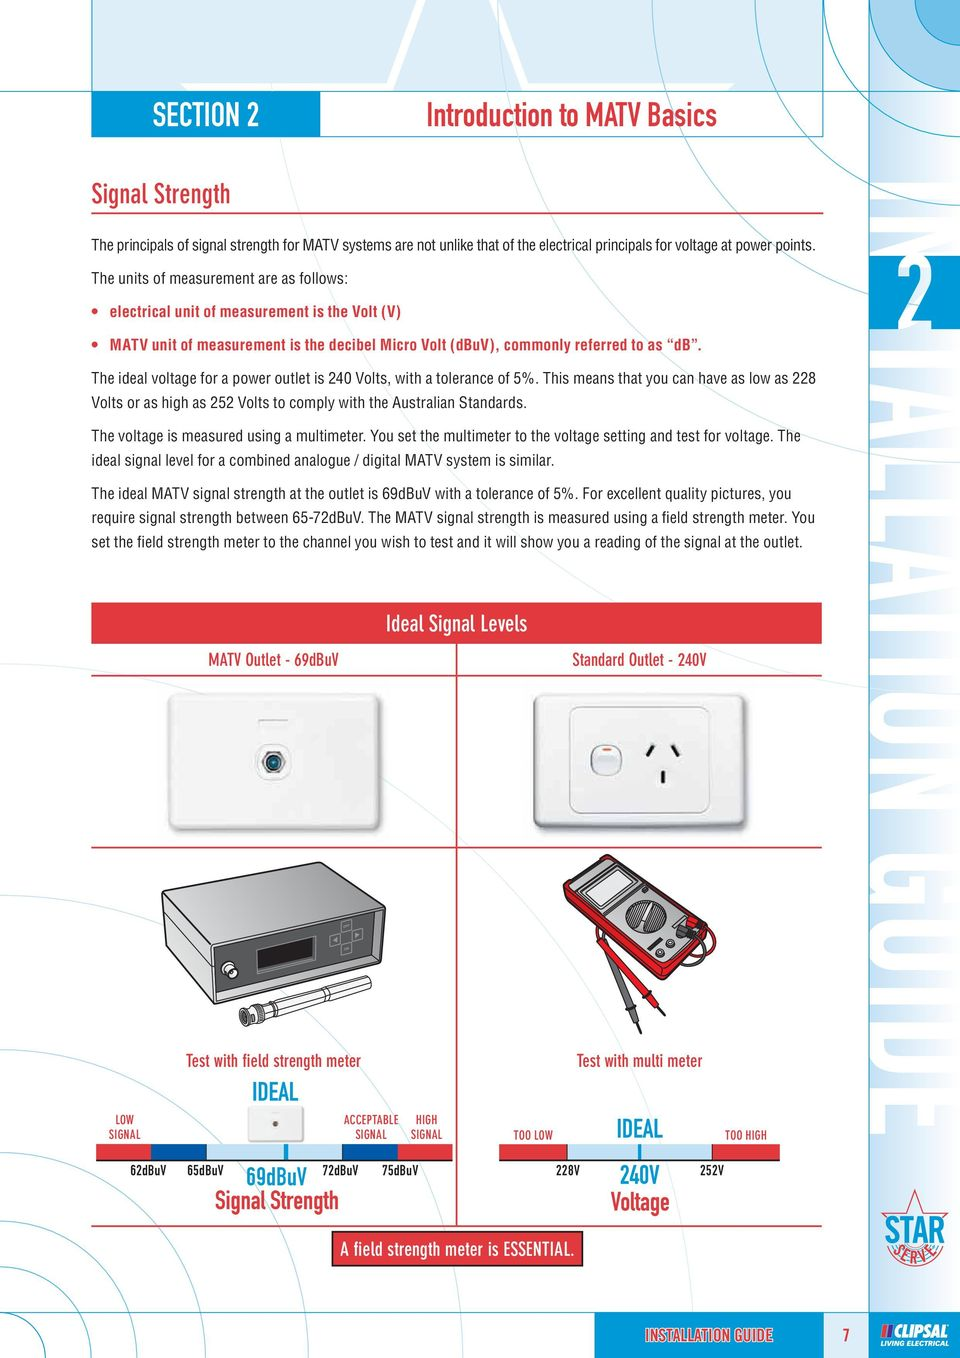 Home Networking Solutions Pdf If You Want The Infrared Transmitter That Has Signal Strength Is Ideal Voltage For A Power Outlet 240 Volts With Tolerance Of 5